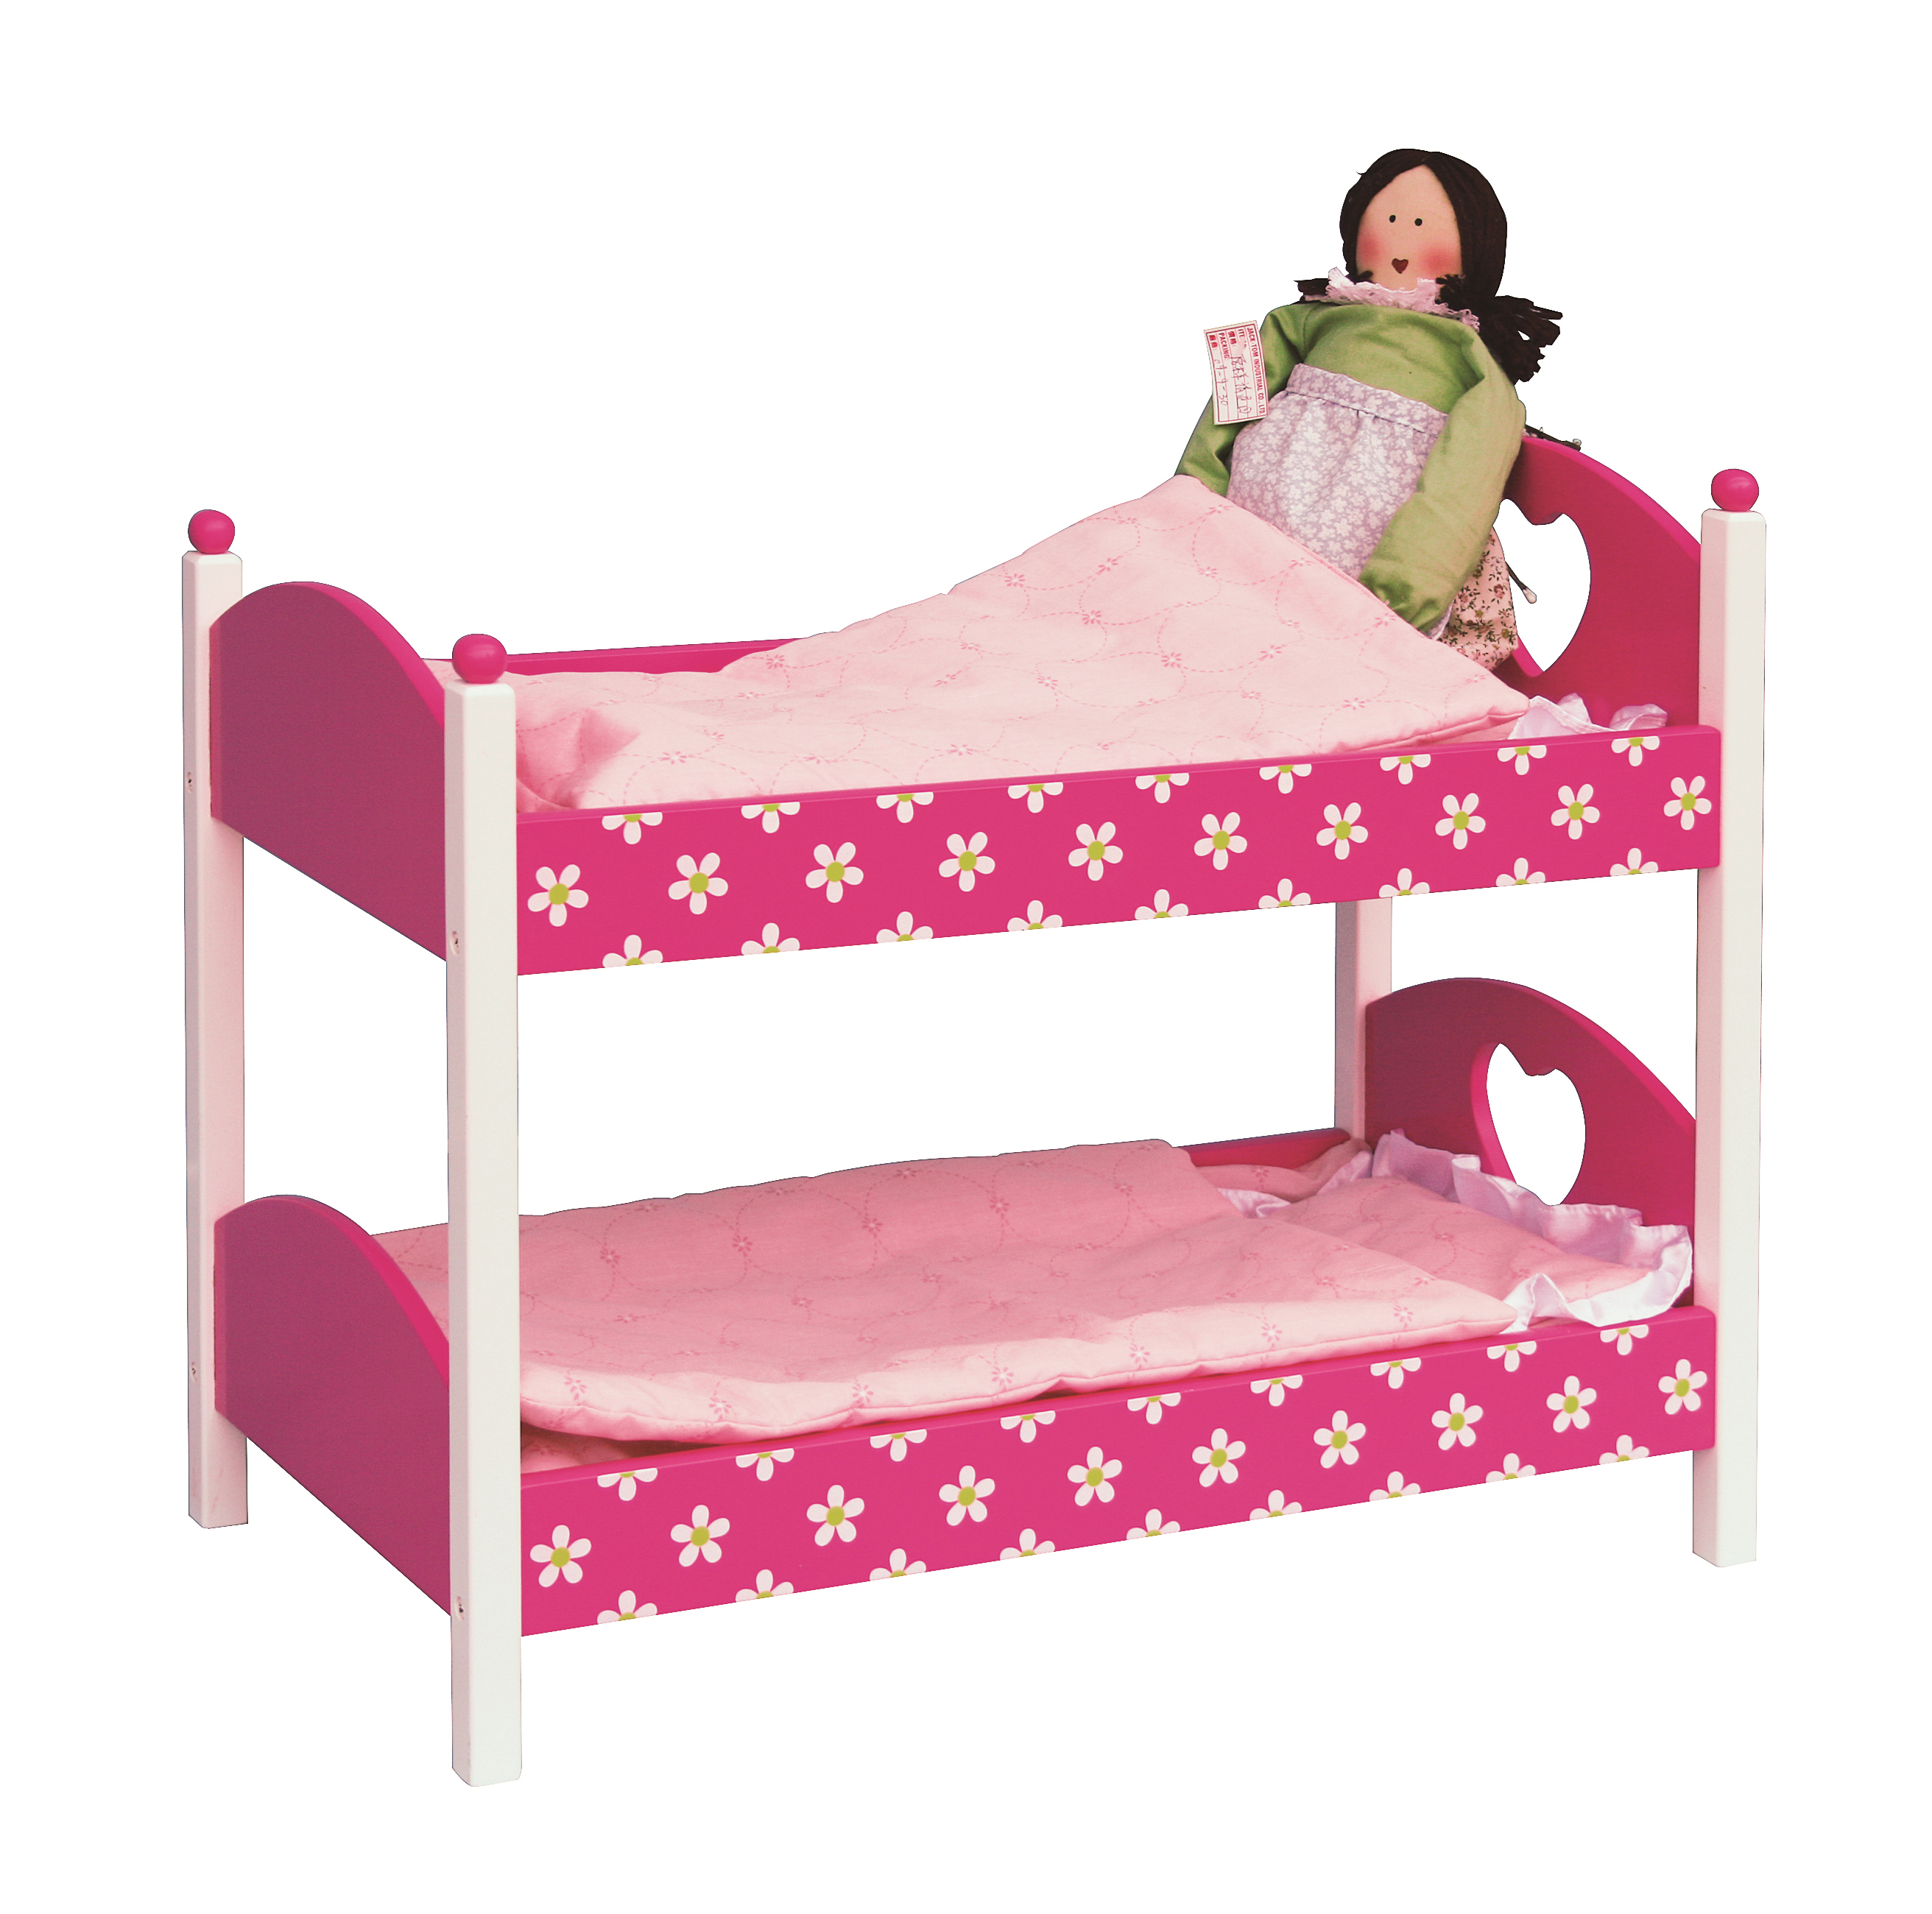 Picture of: Bunk Bed For Doll Buy Cheap Bunk Beds Doll Bunk Bed Astm En71 Product On Alibaba Com